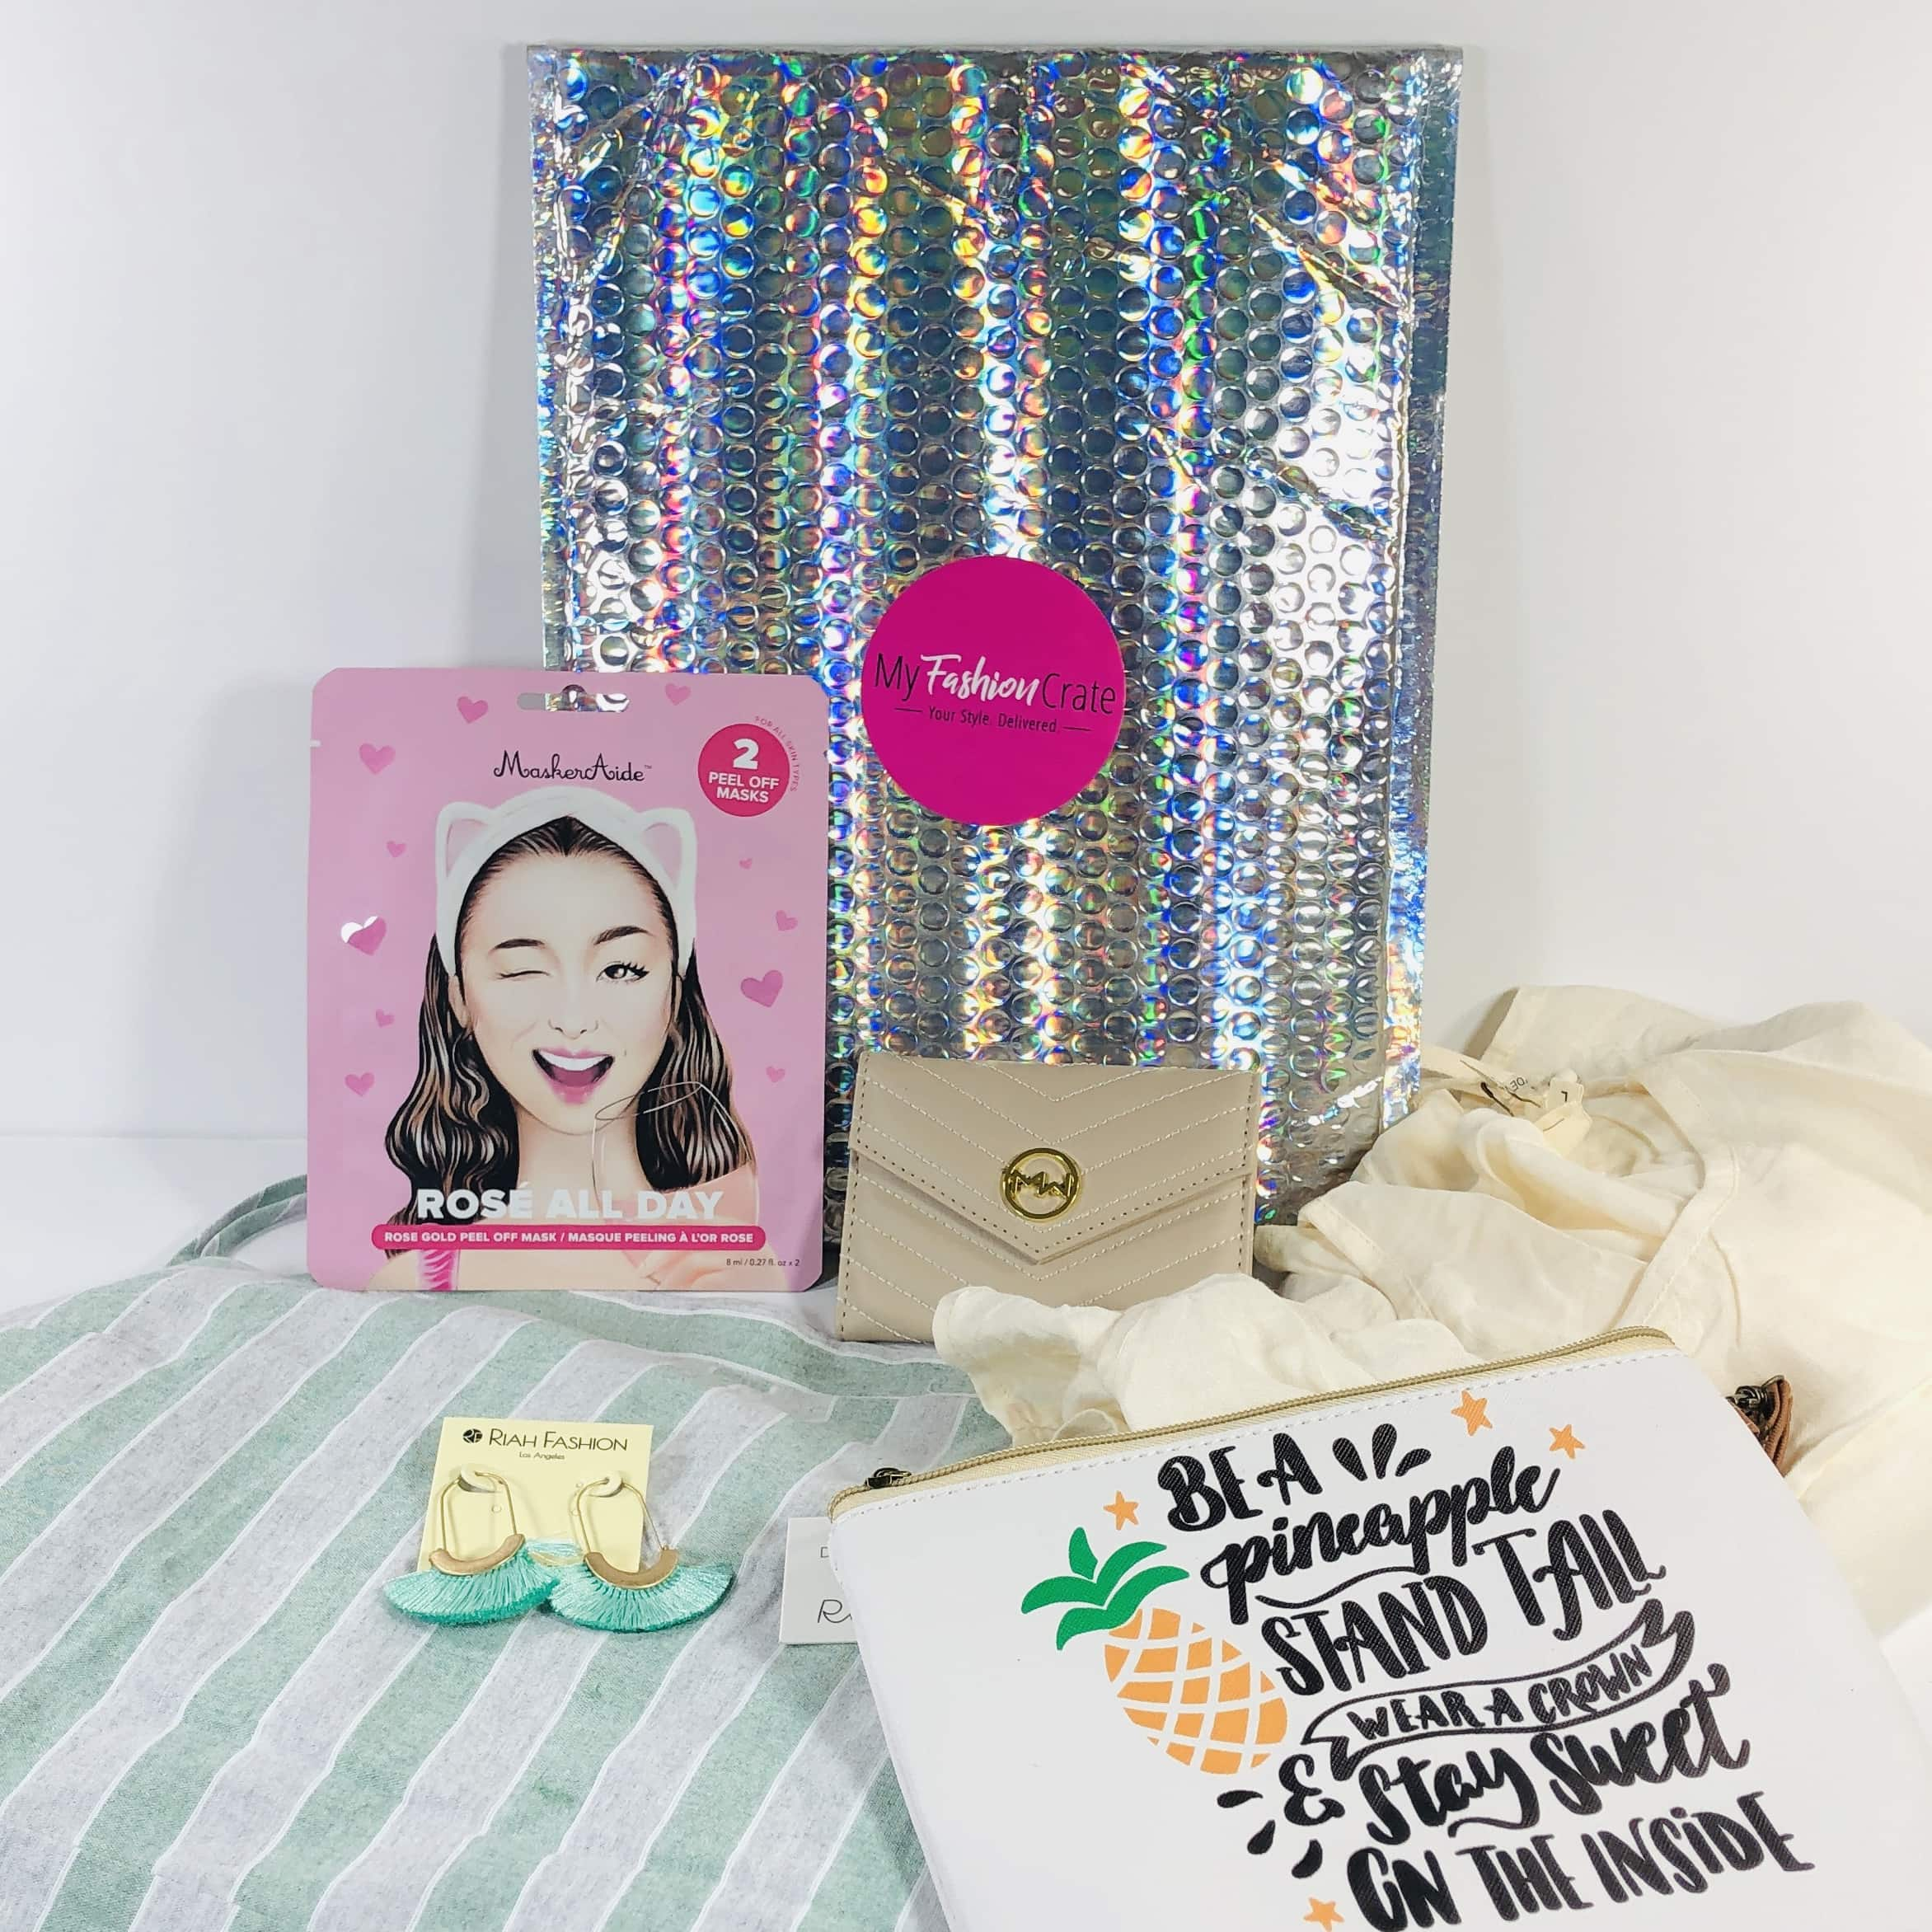 My Fashion Crate August 2019 Subscription Box Review